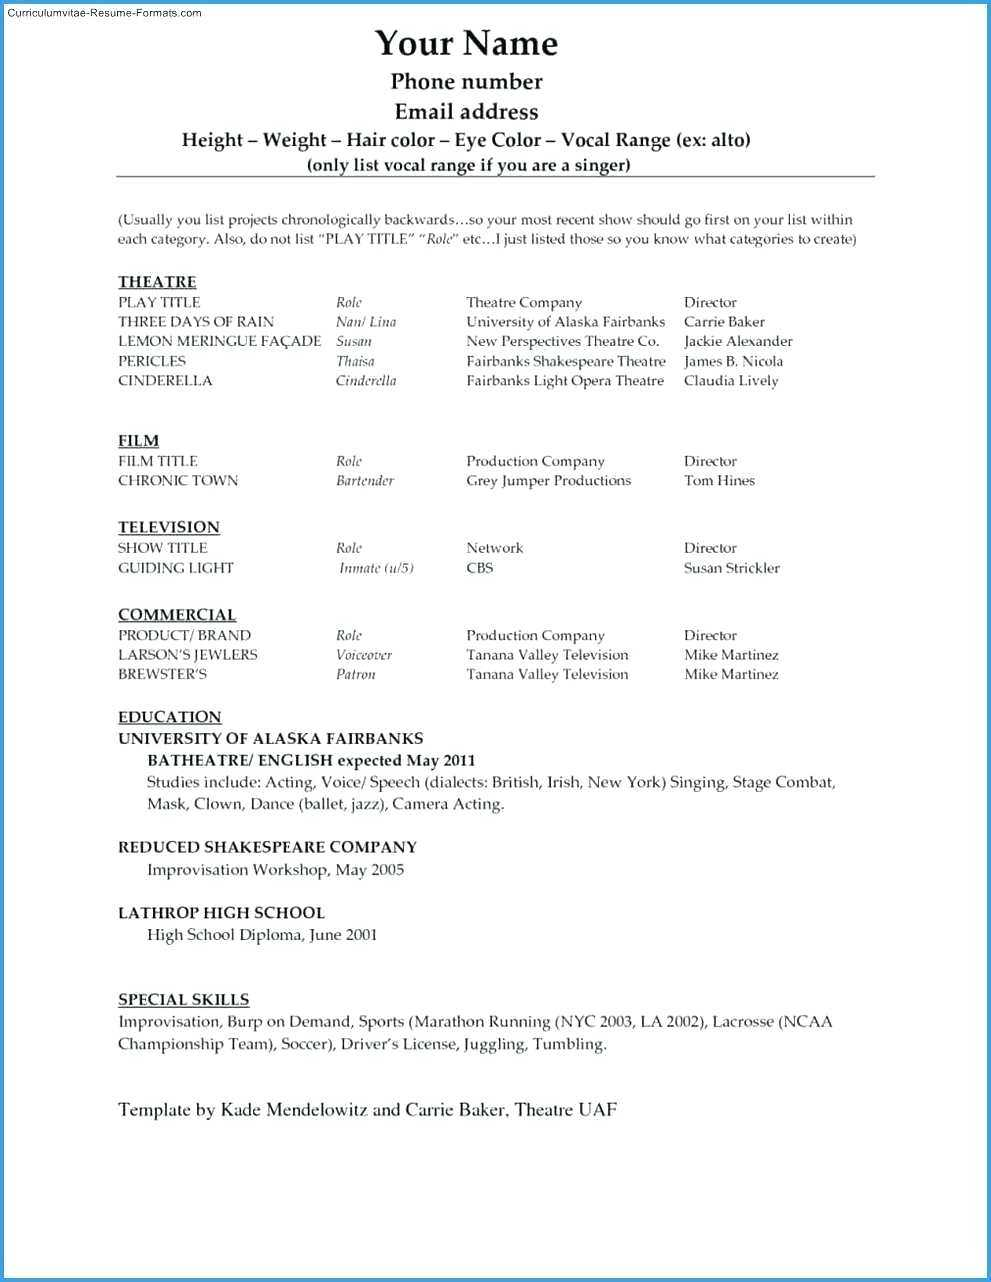 Actors Cv Template Free – Wecolor.co intended for Theatrical Resume Template Word